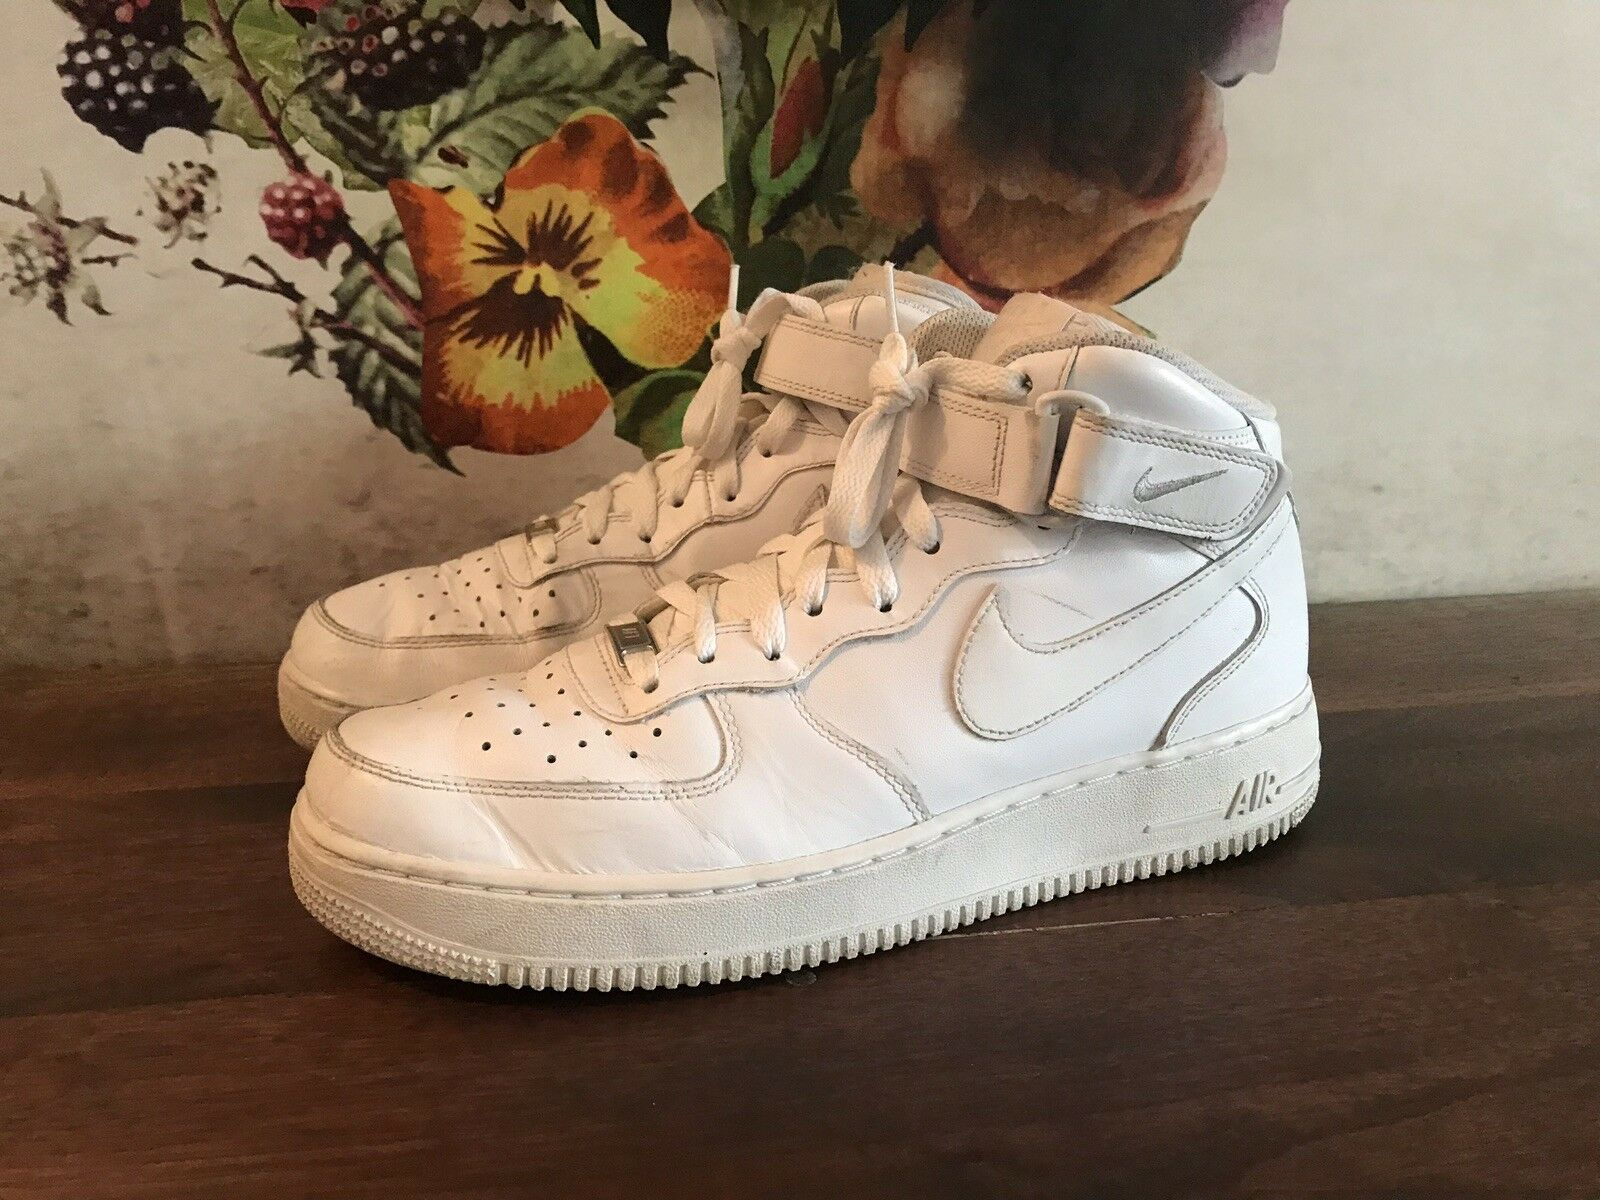 Nike Air Force 1 High Top Triple White AF1 US Men Size 10 Sneakers Velcro Strap